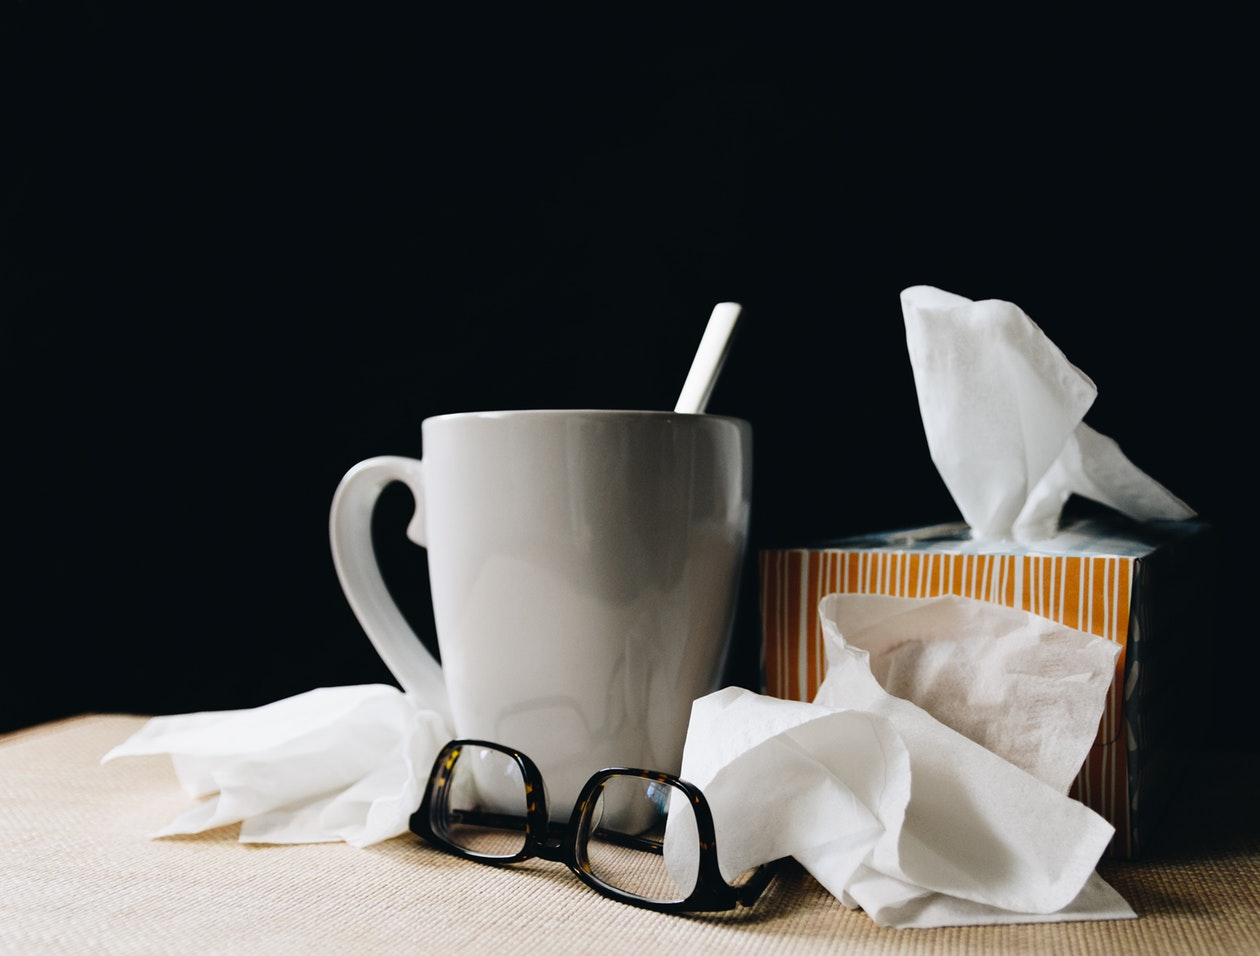 A tissue box, glasses, and a cup of warm tea